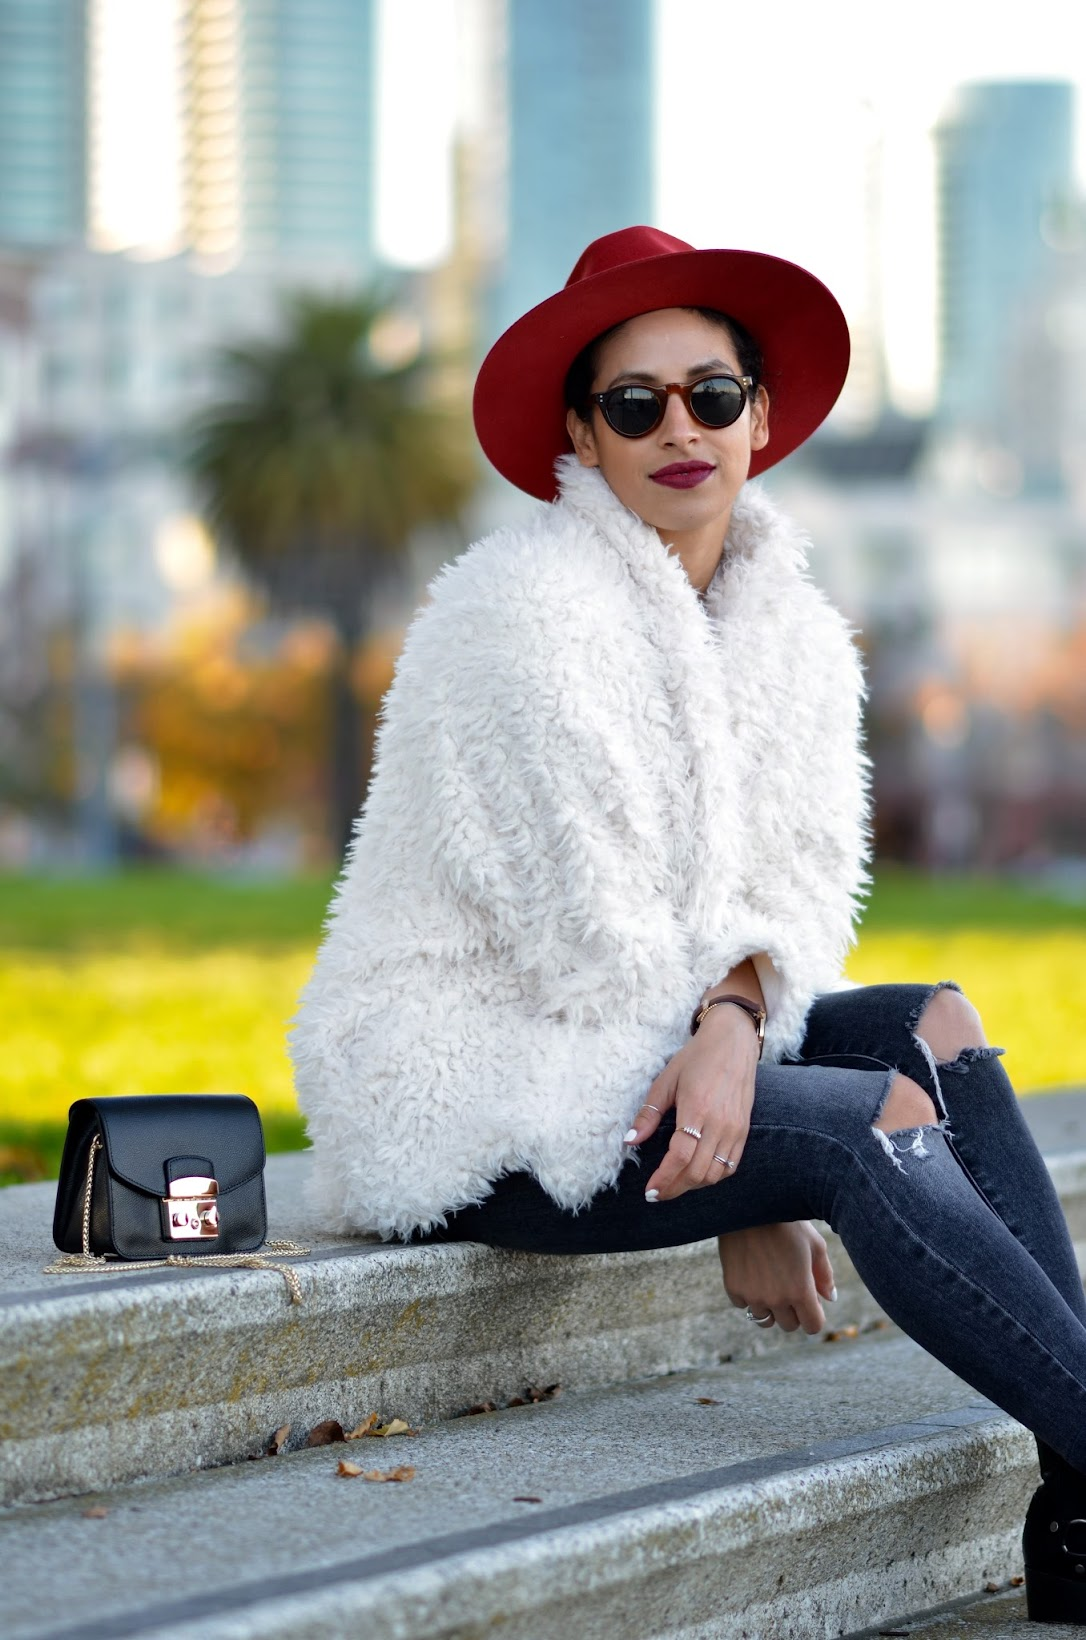 Frye moto harness boots, Red Goorin Bros fedora, J Brand denim, white fuzzy faux fur coat, white faux fur coat, burgundy lipstick, chic rainy day style, chic winter style